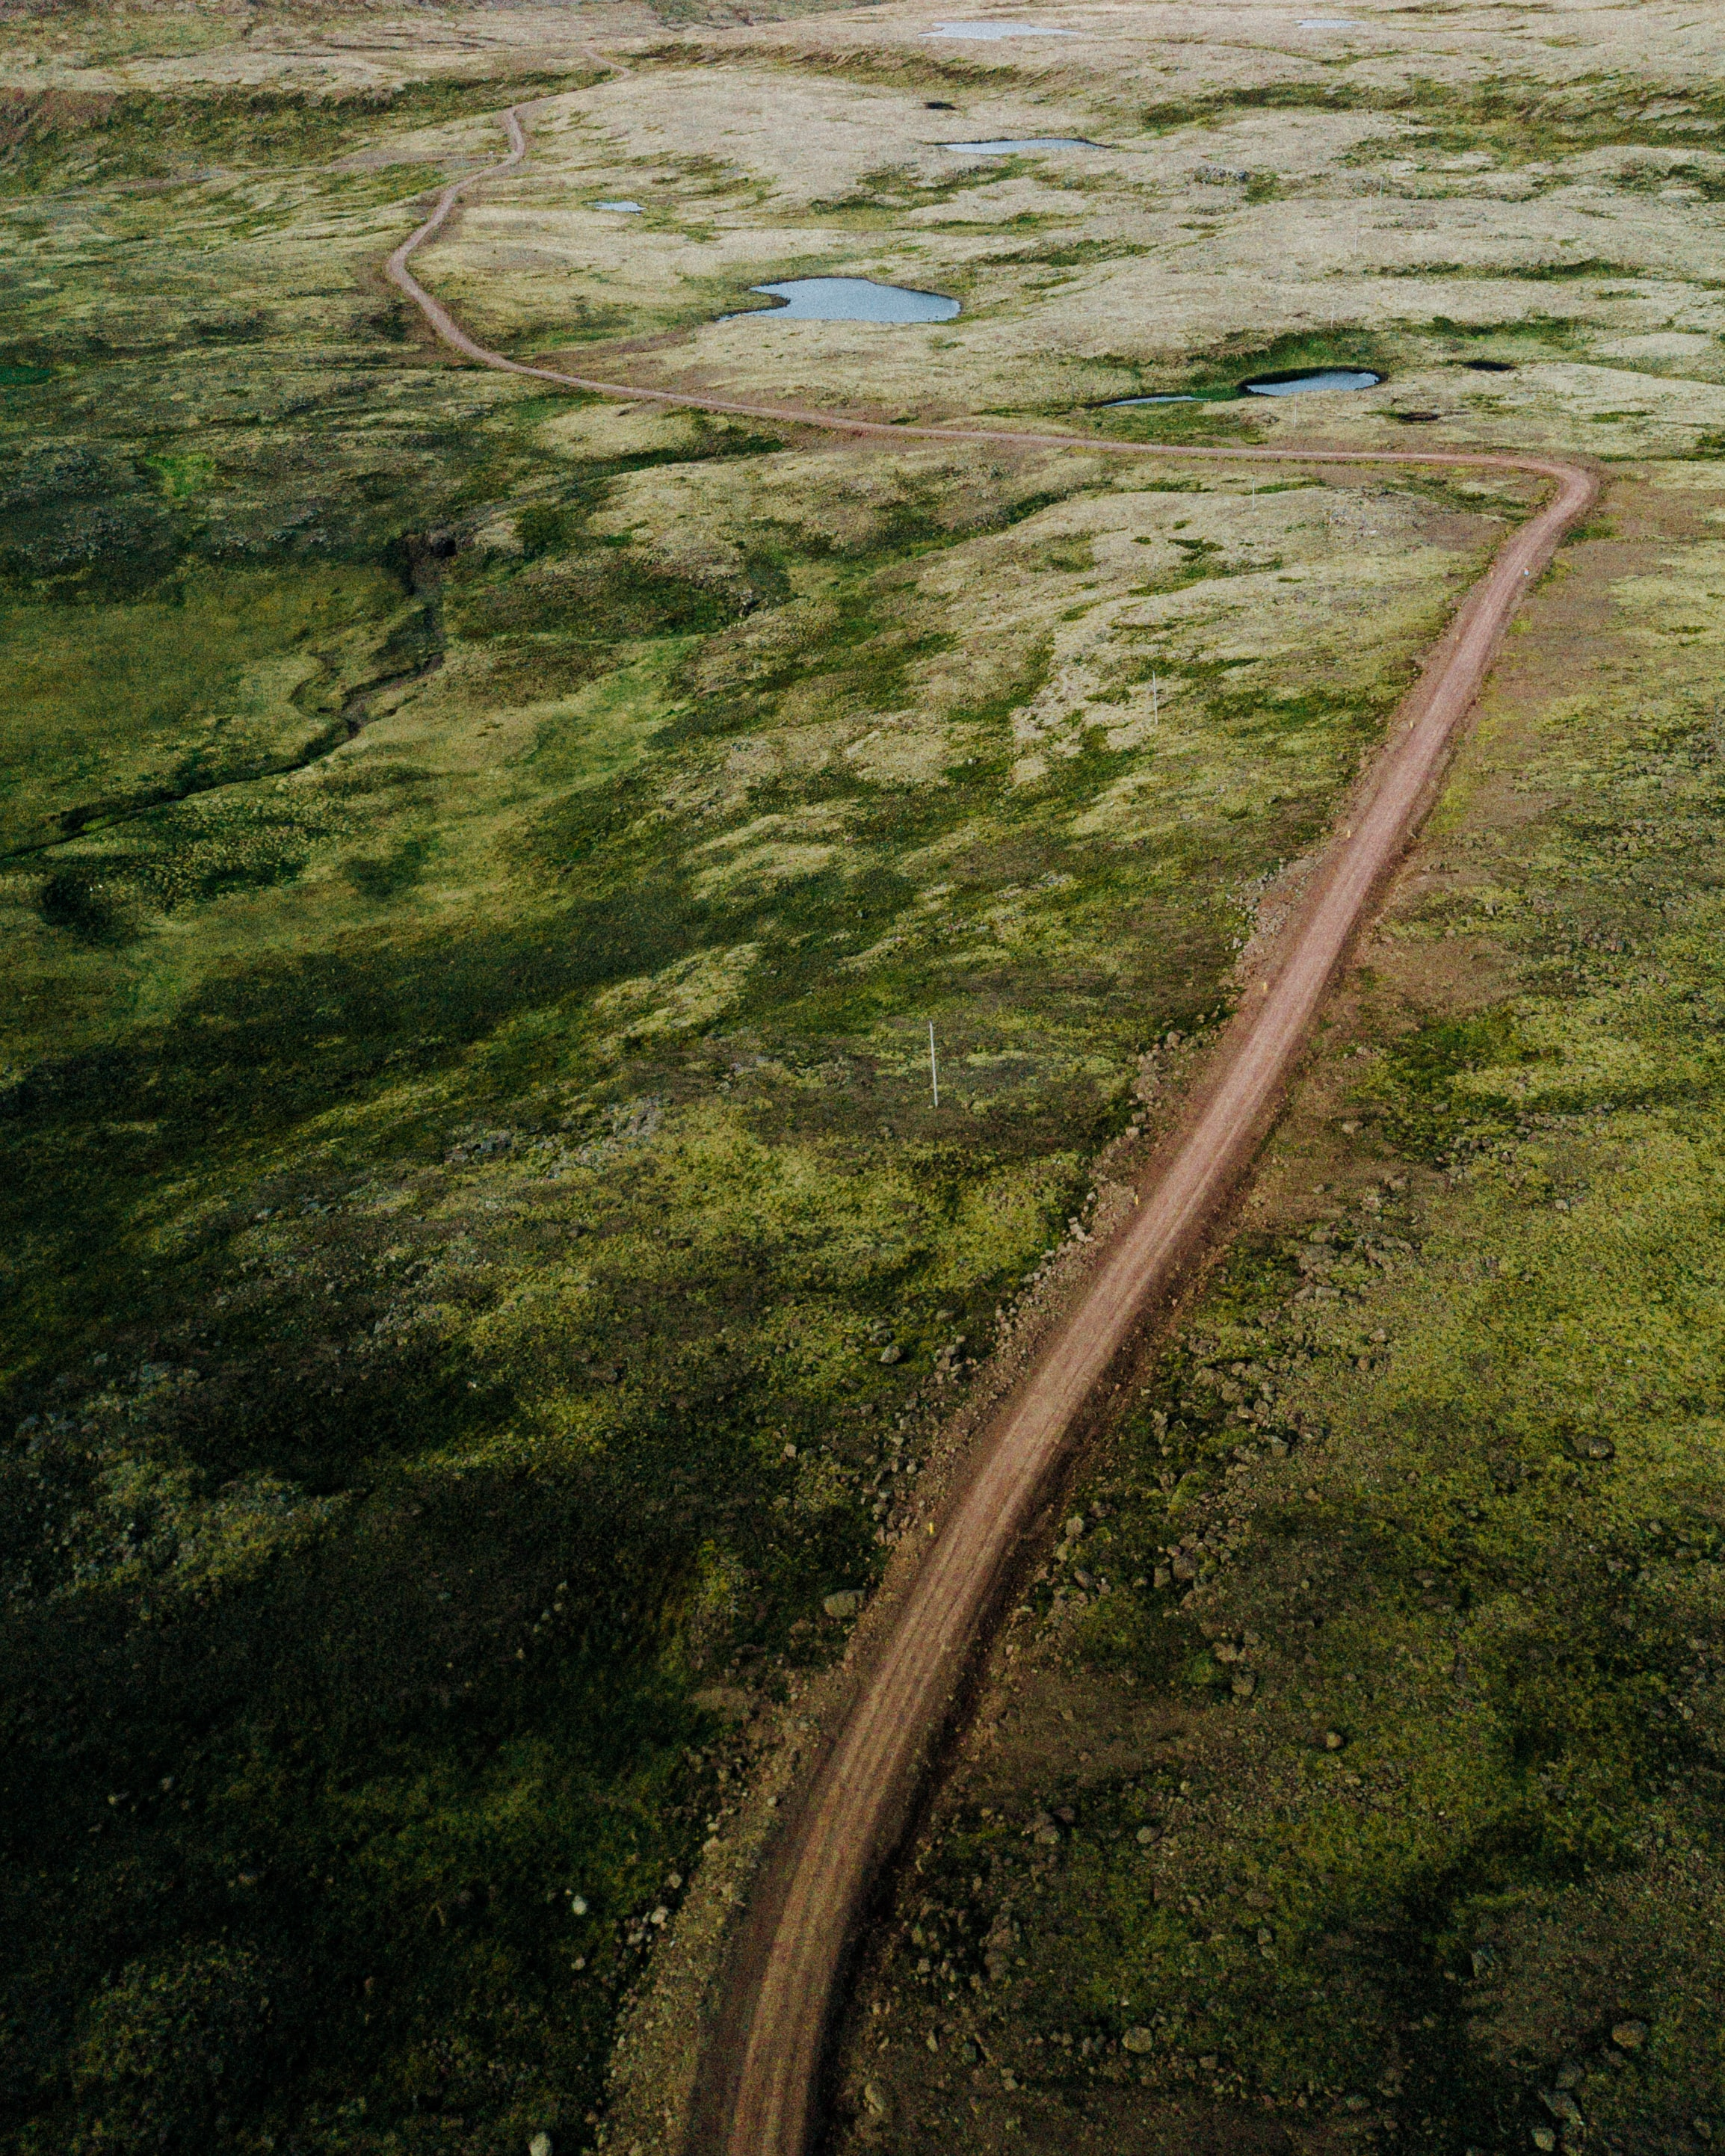 aerial view photo of road and green land area